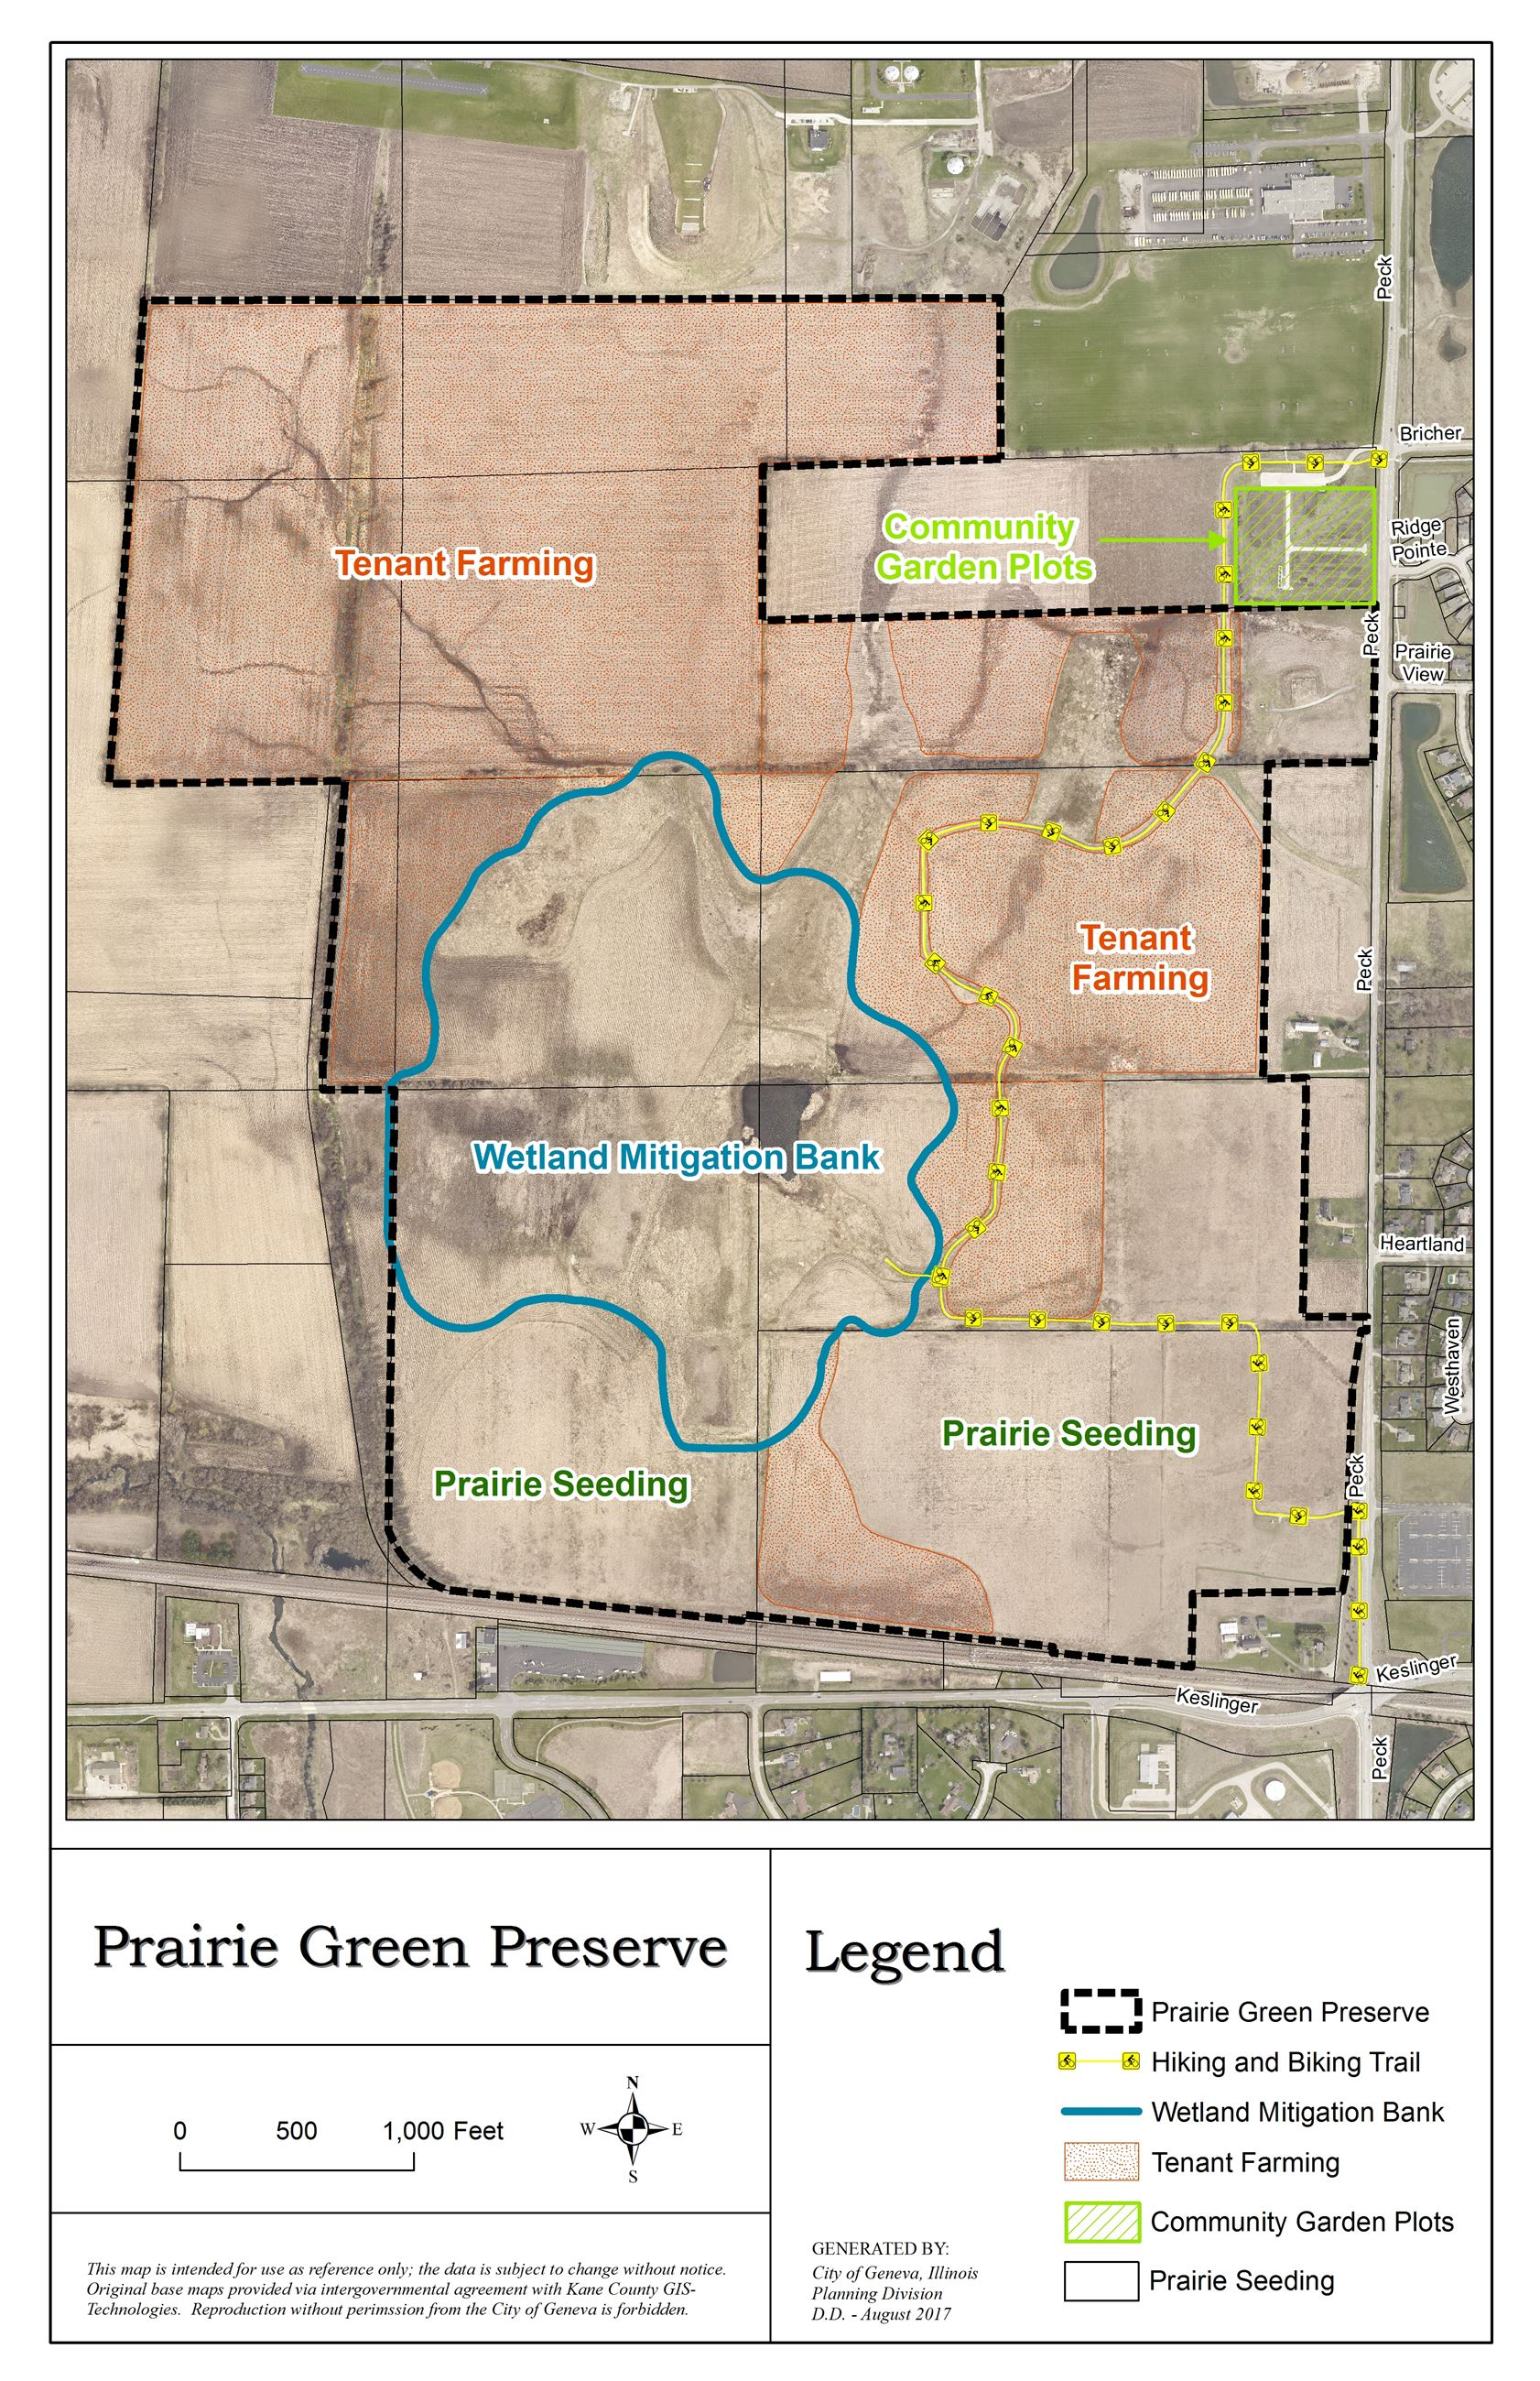 Prairie Green Preserve Geneva IL Official Website - Il on us map